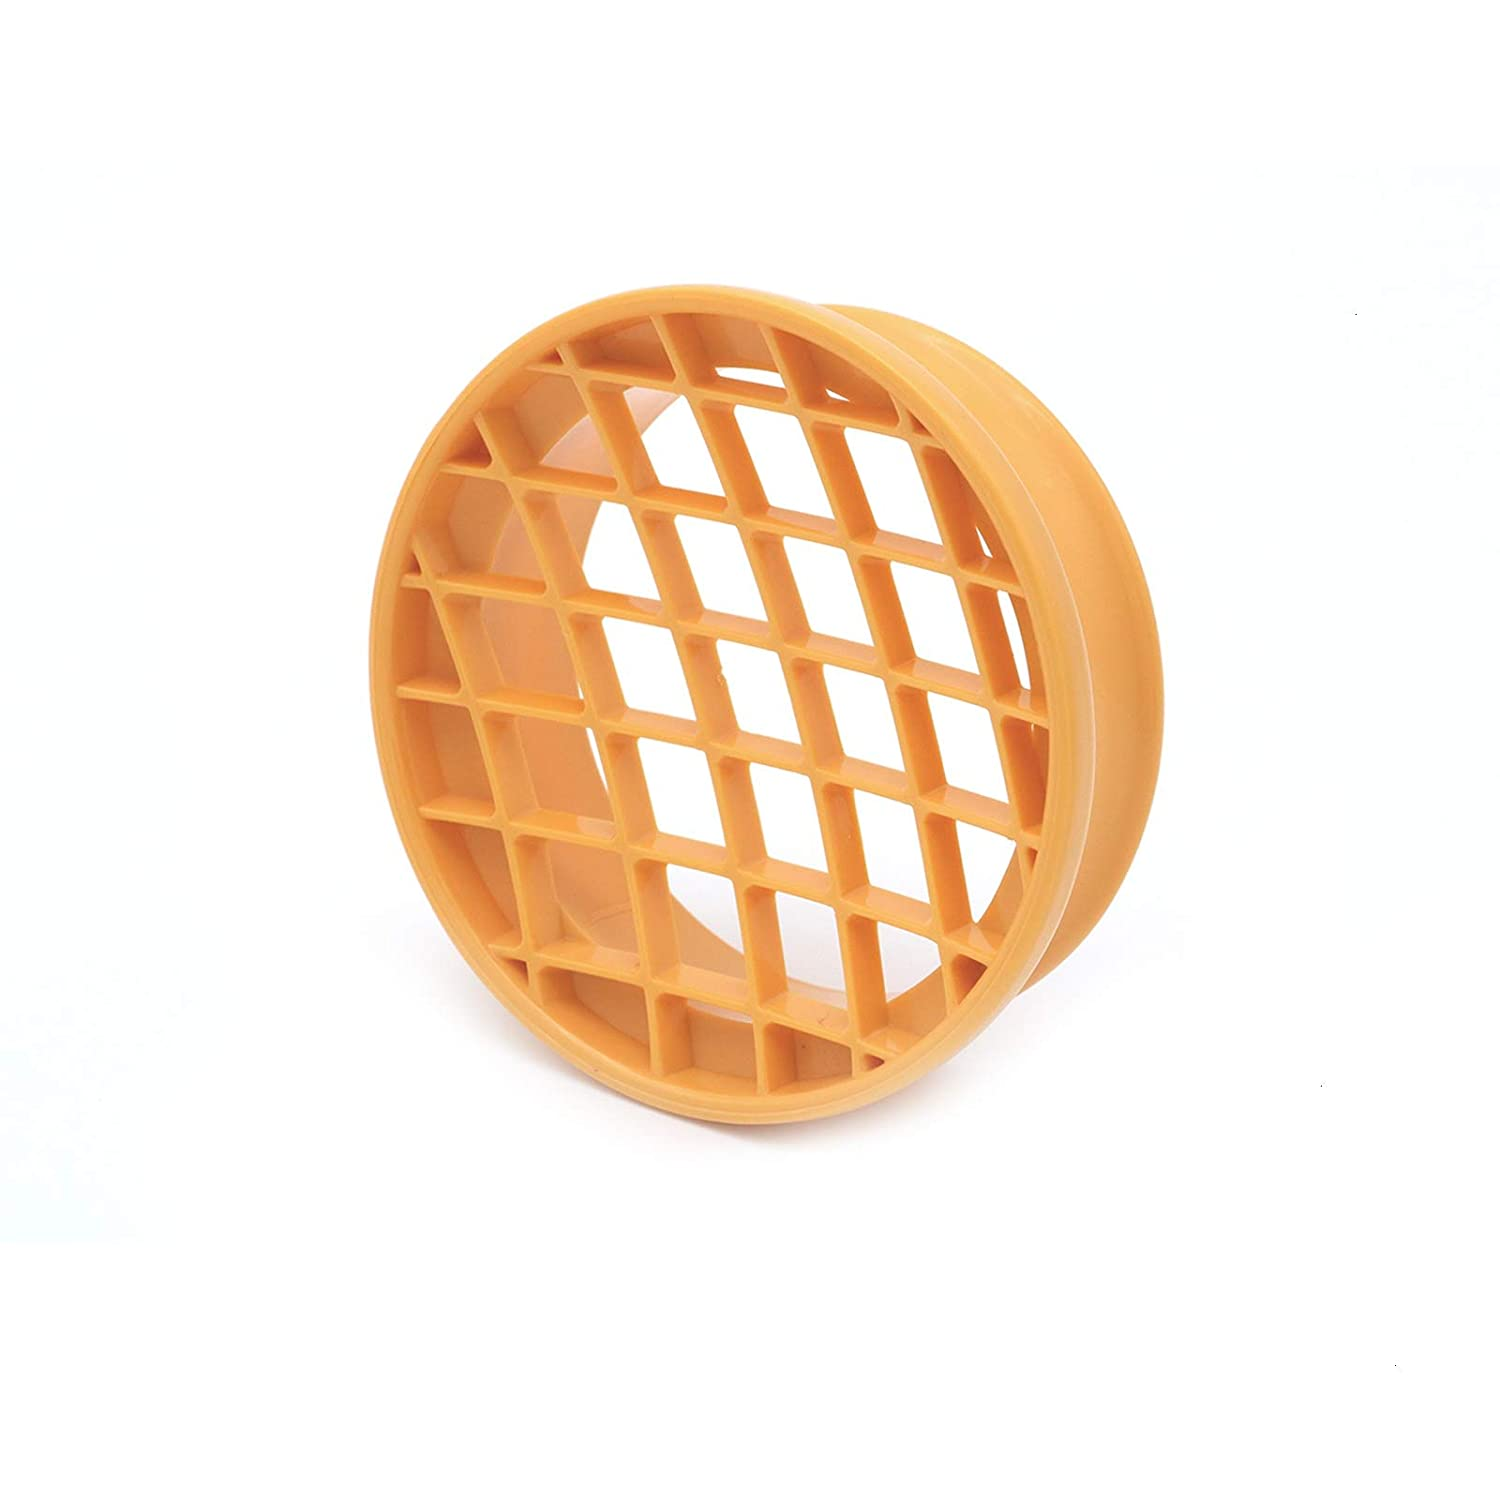 Bread Mold, Pineapple Bread Mold Cake Mould Pineapple Bun Cutter Mold Baking Tool Gaiatop